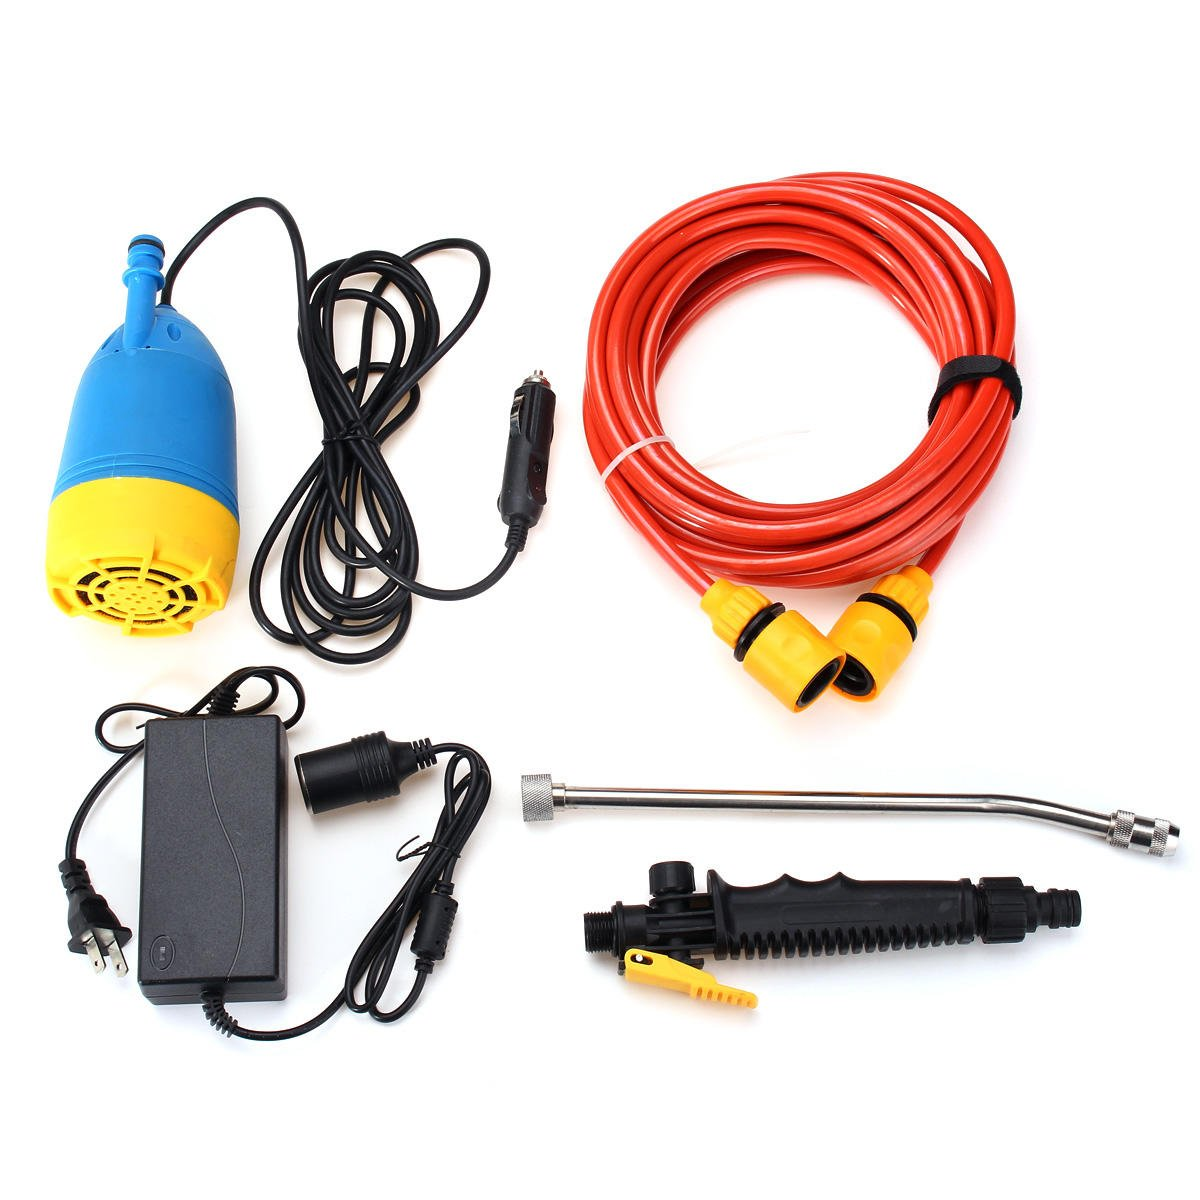 12V 80W High Pressure Car Washer Kit Water Wash Pump Car Campervan Sprayer Suit by Theoriginalstyle Automobiles (Image #1)